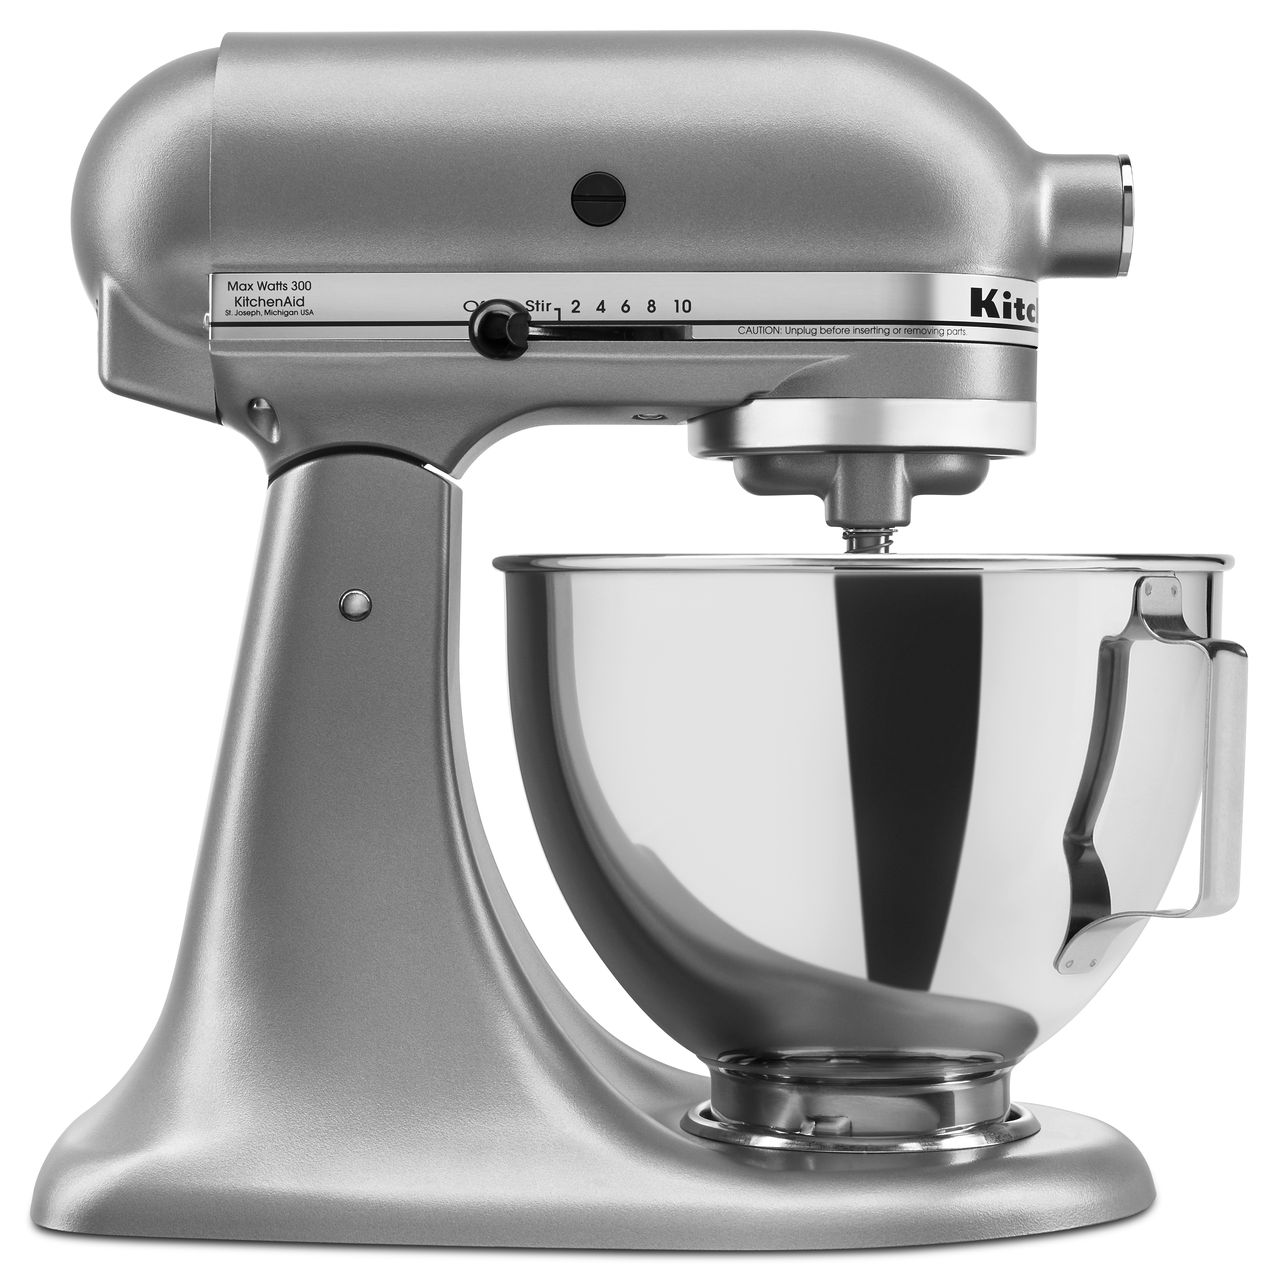 KitchenAid-4-5-quart-Tilt-Head-Stand-Mixer-with-Flex-Edge-Beater-KSM85PSQ thumbnail 27